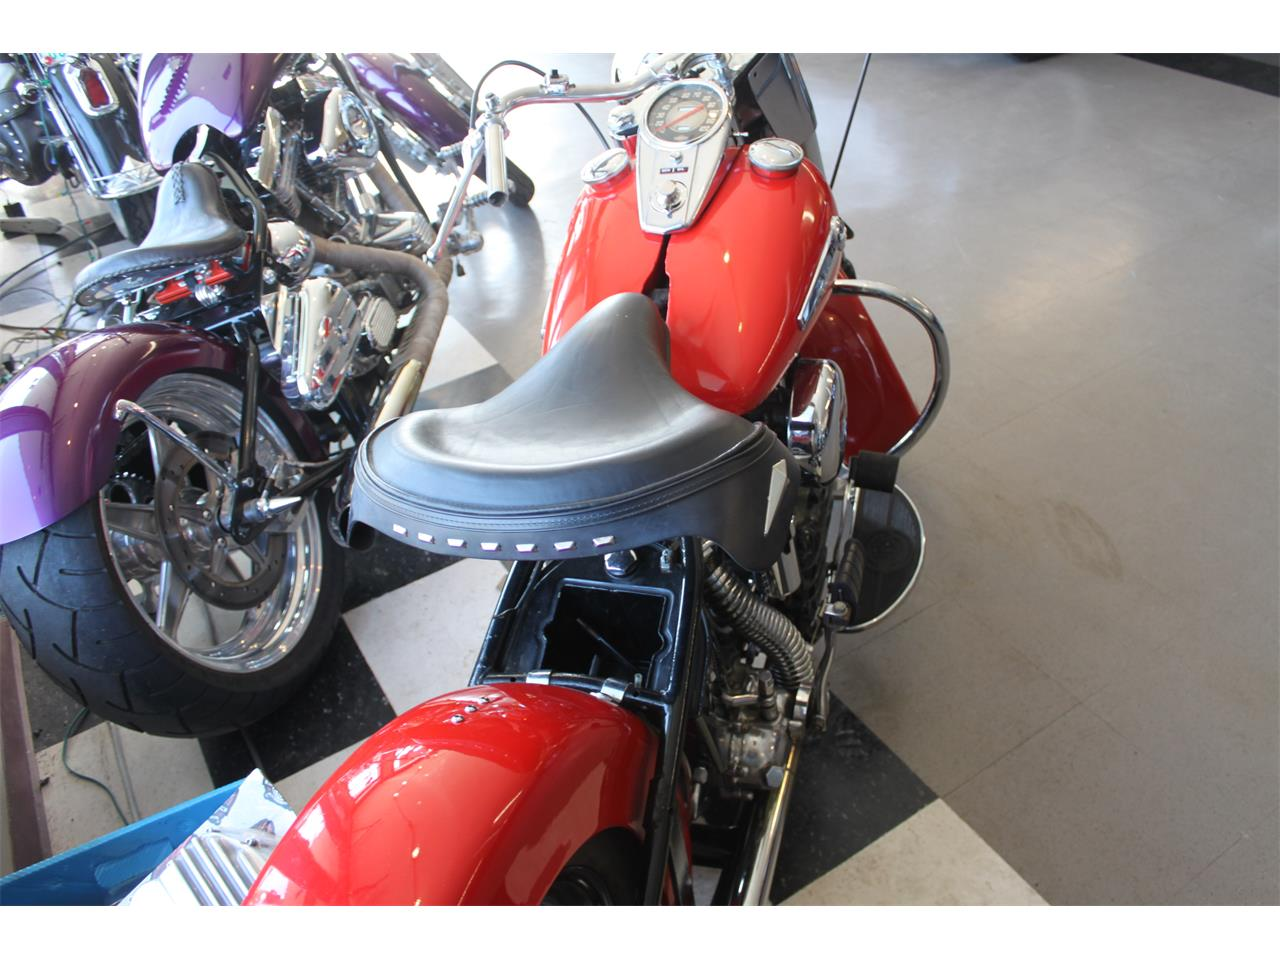 1950 Harley-Davidson Motorcycle for sale in Carnation, WA – photo 16